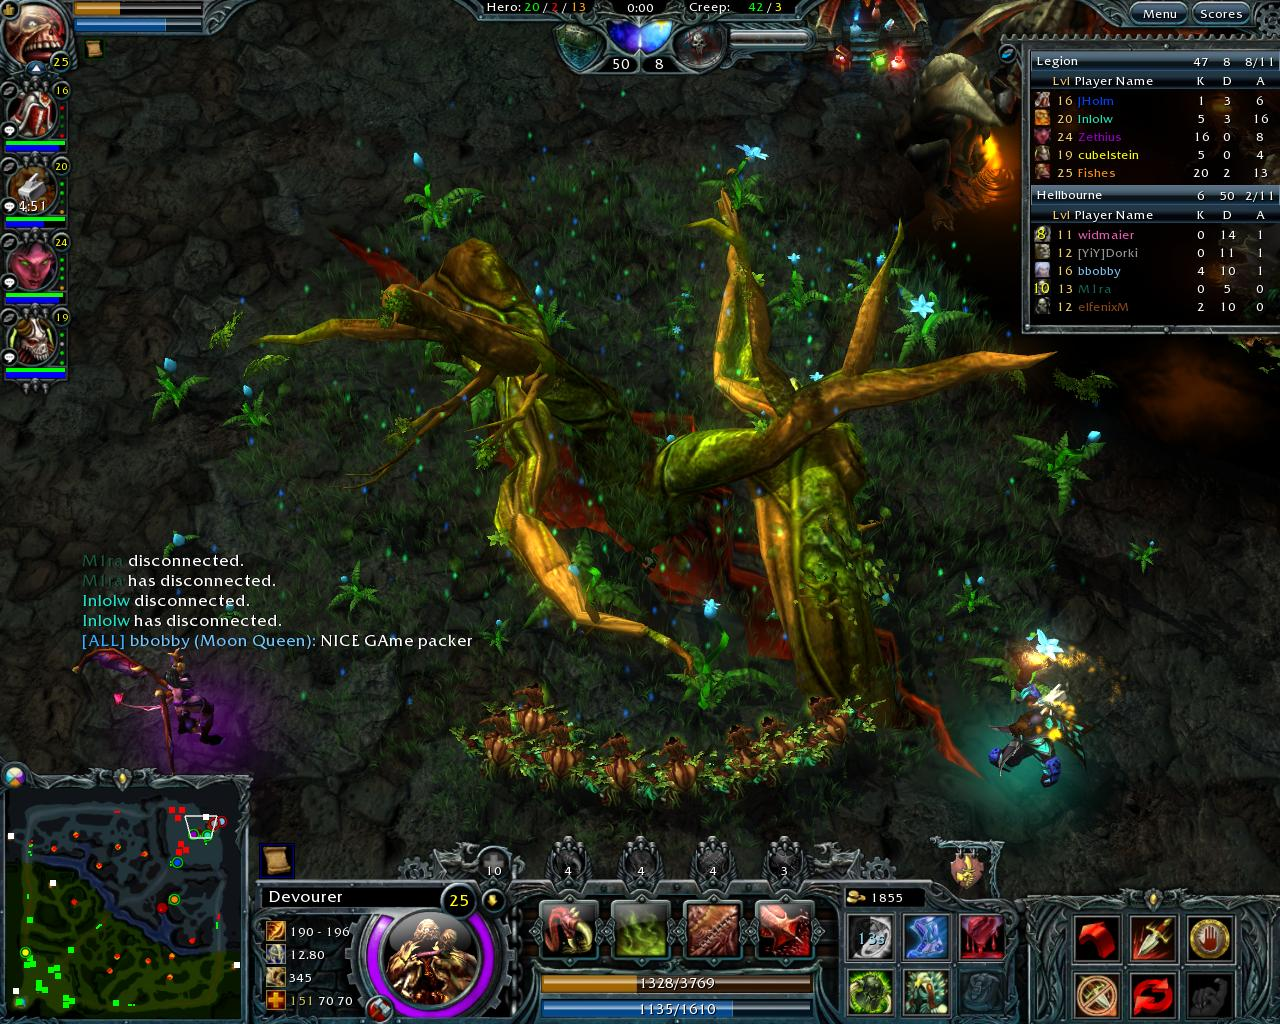 Heroes of newerth while initially competitive doesnt shine quite as picture